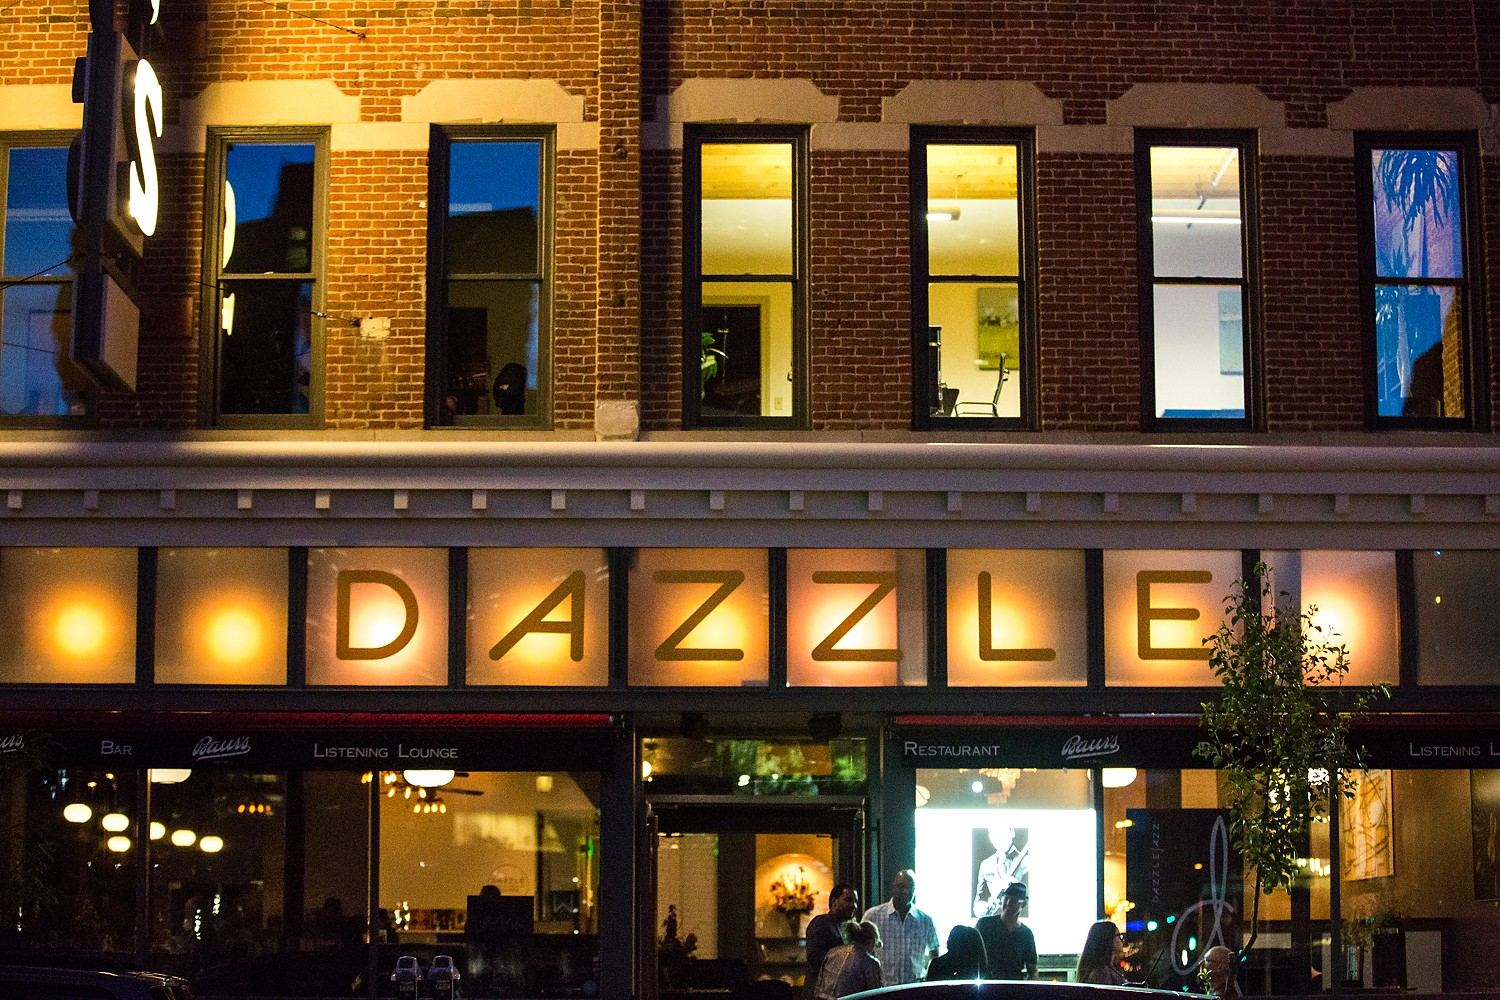 Colorado Independent Venue Association to Partner with Dazzle's Bread and Jam Project